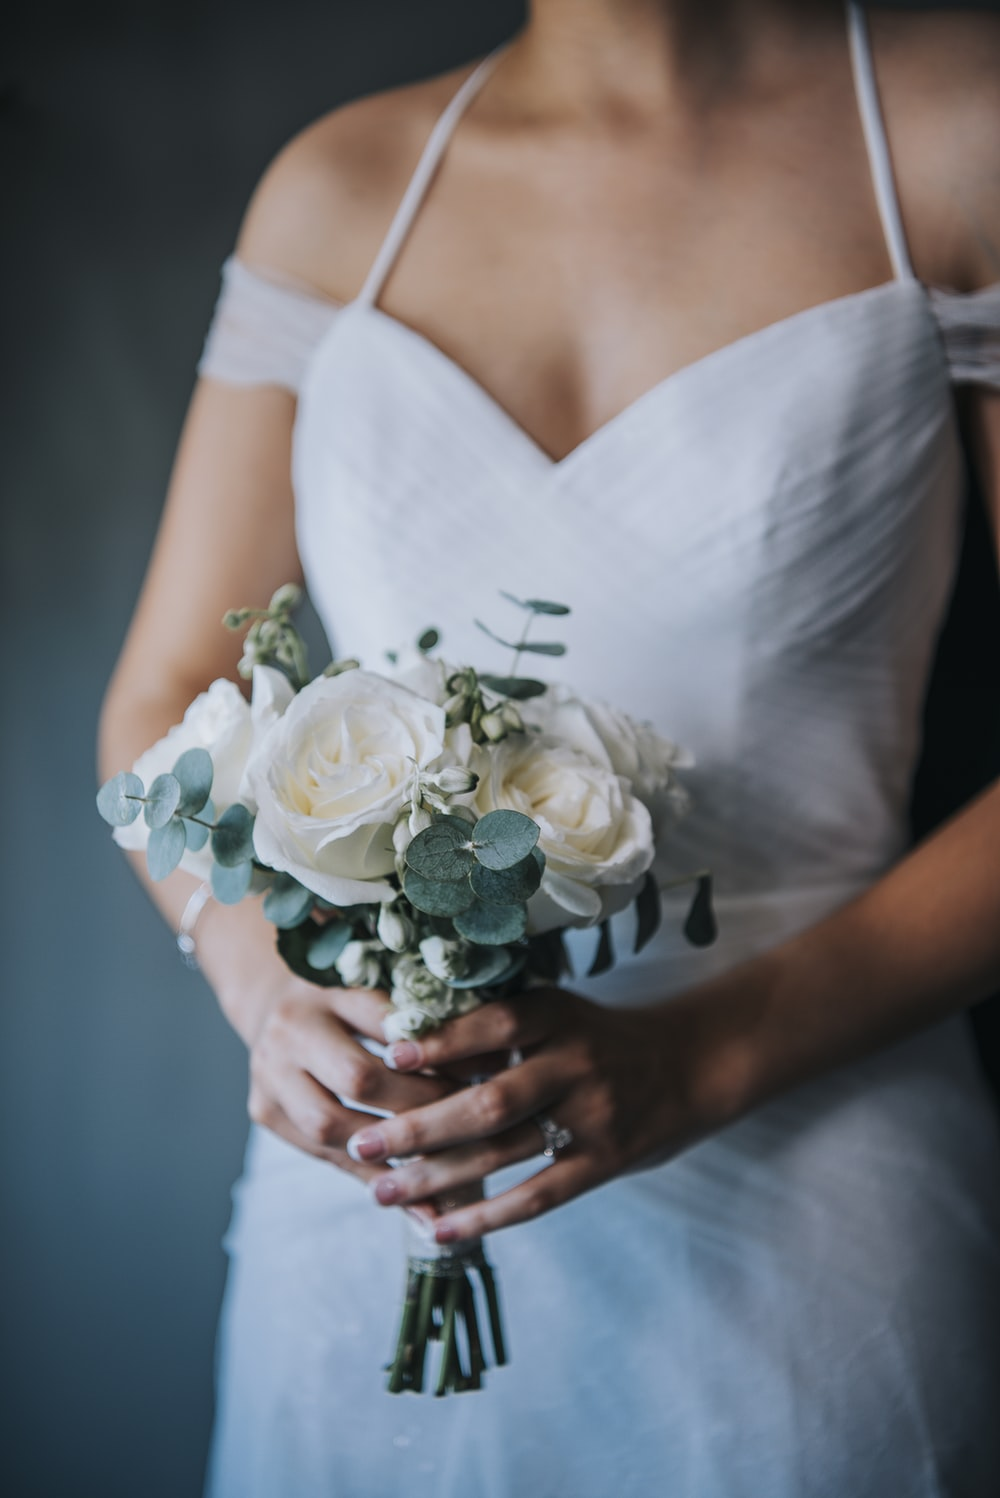 woman in white sleeveless dress holding white rose bouquet